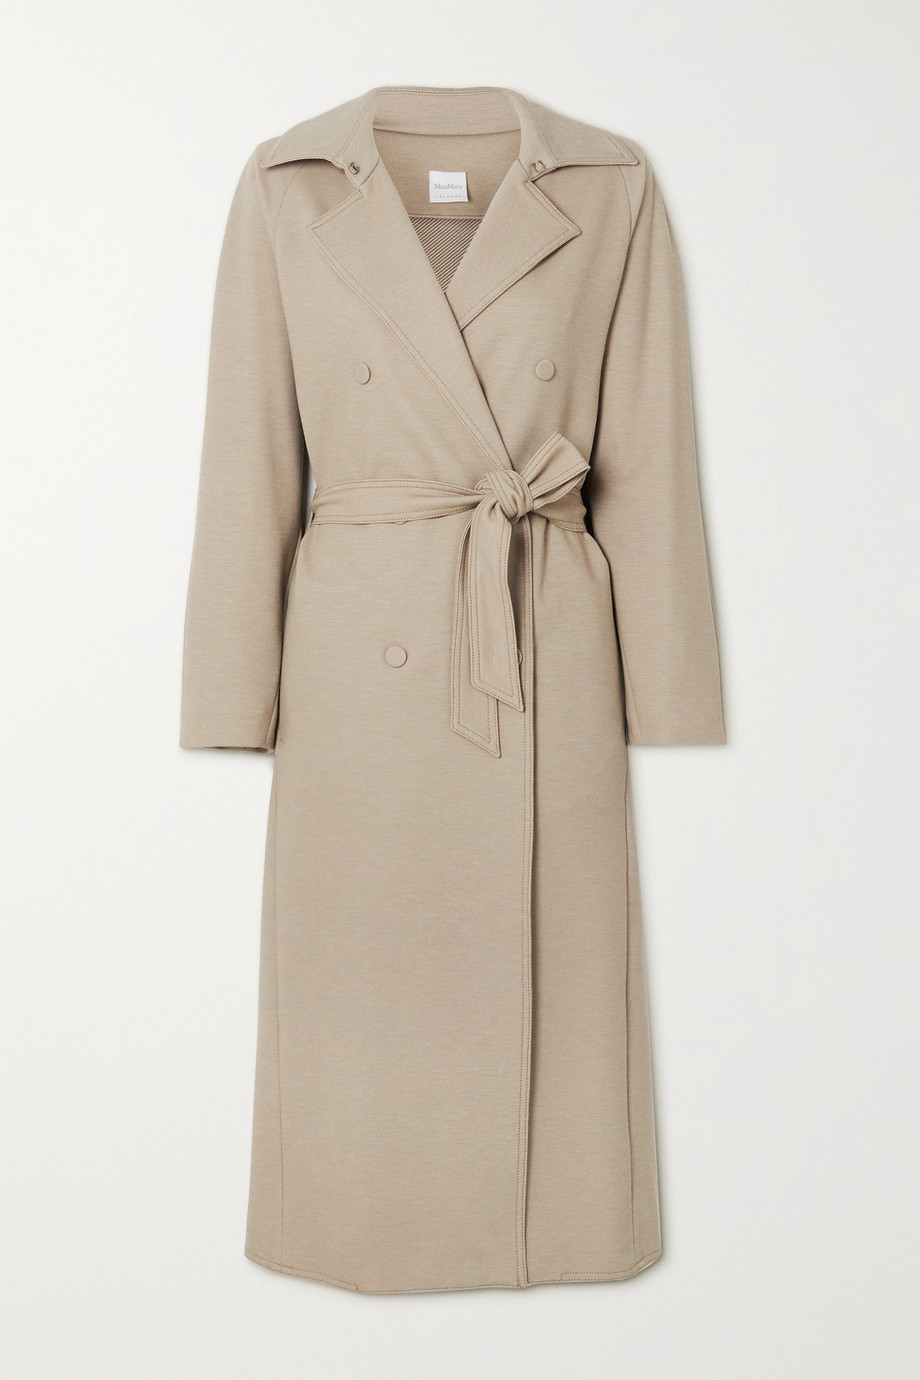 MAX MARA + Leisure Cinghia belted double-breasted jersey trench coat